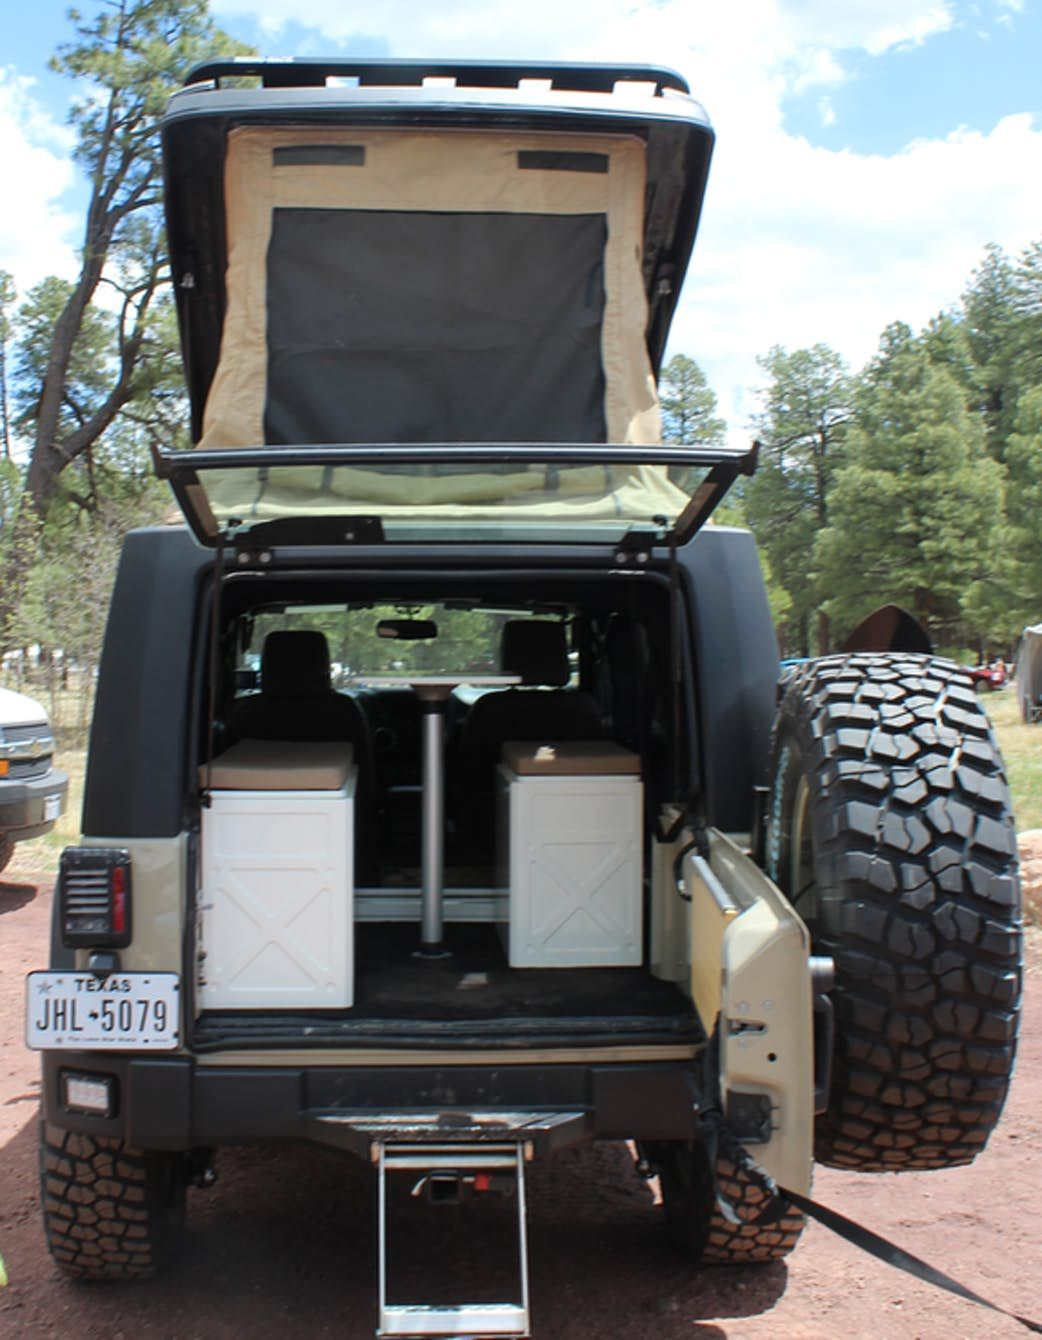 Jeep Wrangler becomes the ultimate pop-up adventure camper with new